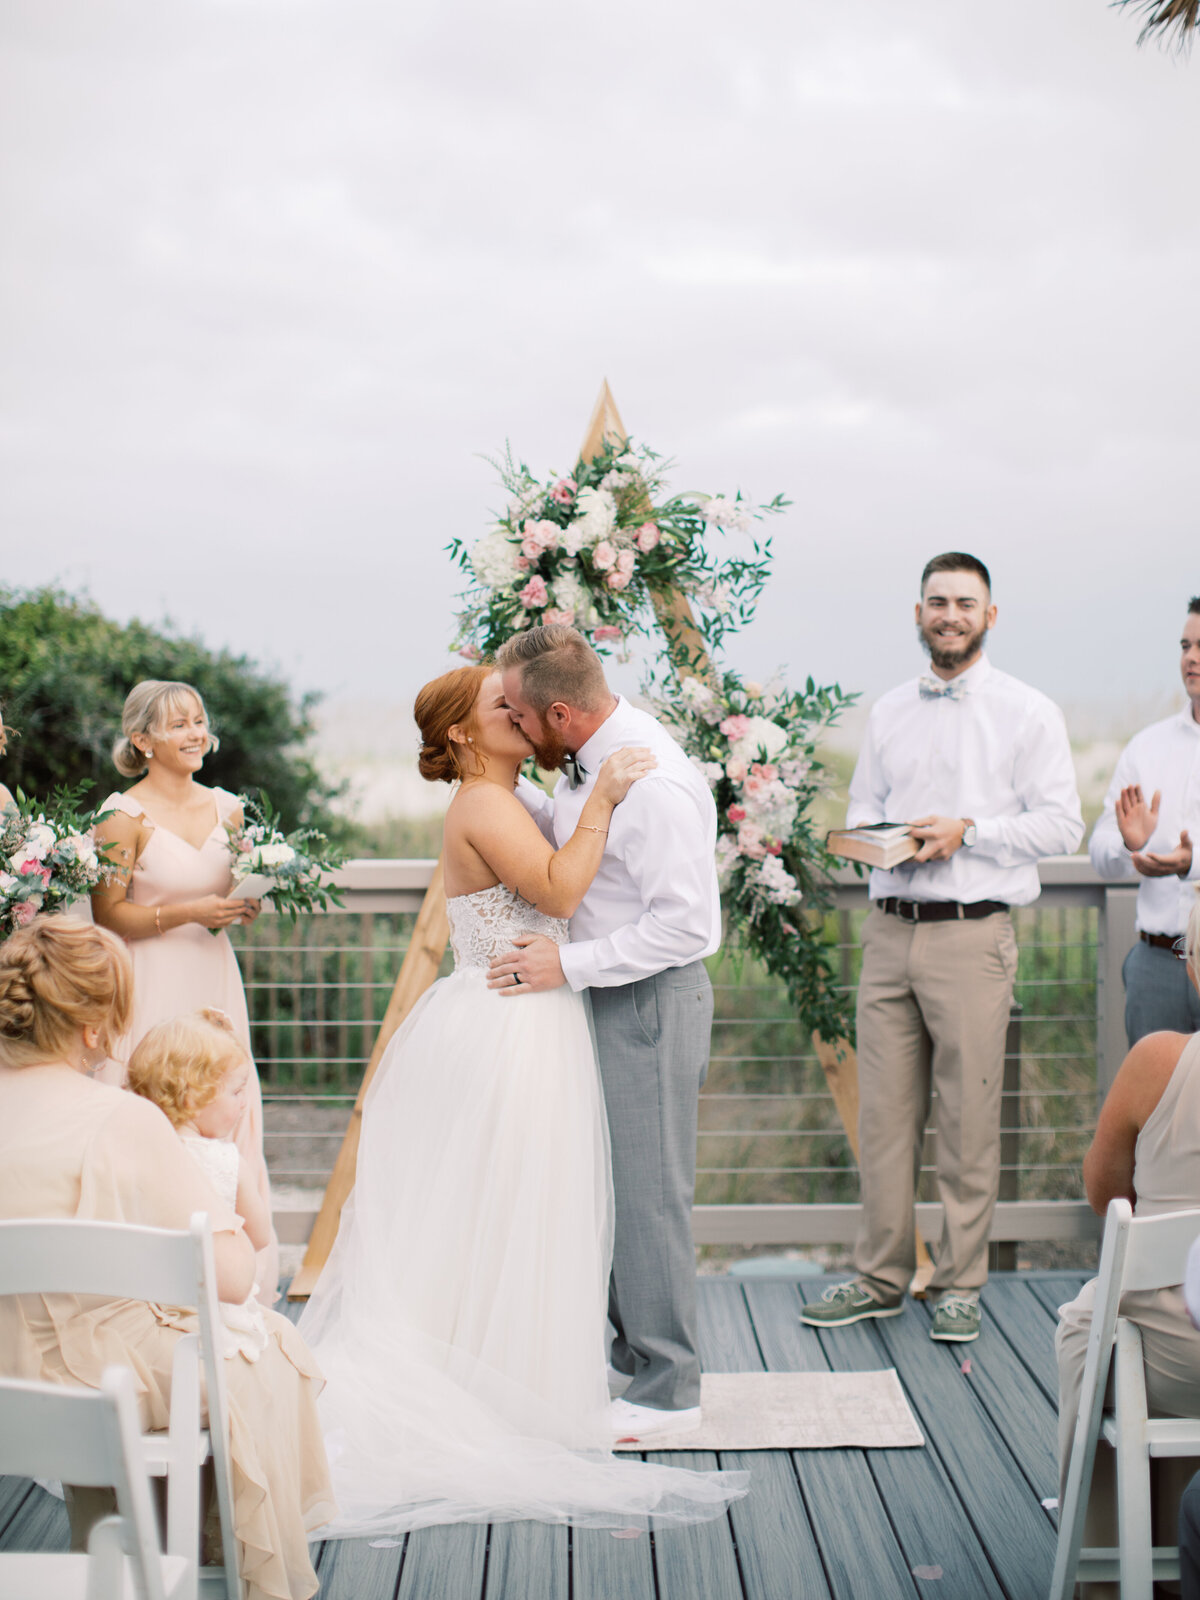 Charleston Wedding Photographer | Beaufort Wedding Photographer | Savannah Wedding Photographer | Santa Barbara Wedding Photographer | San Luis Obispo Wedding Photographer-19